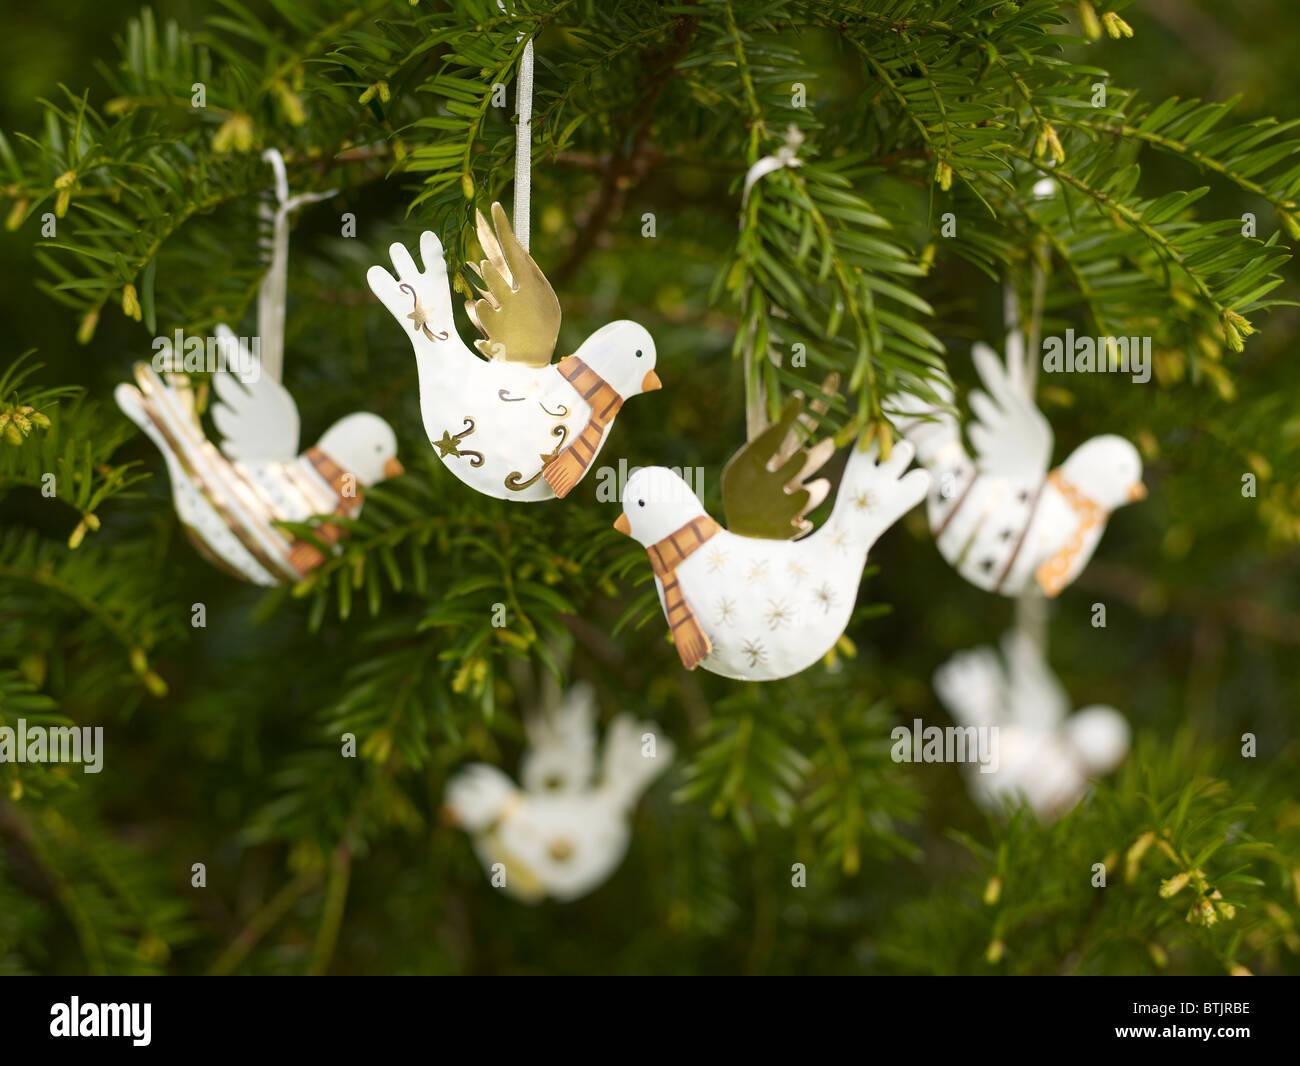 novelty bird christmas tree decorations stock image - Bird Christmas Decorations